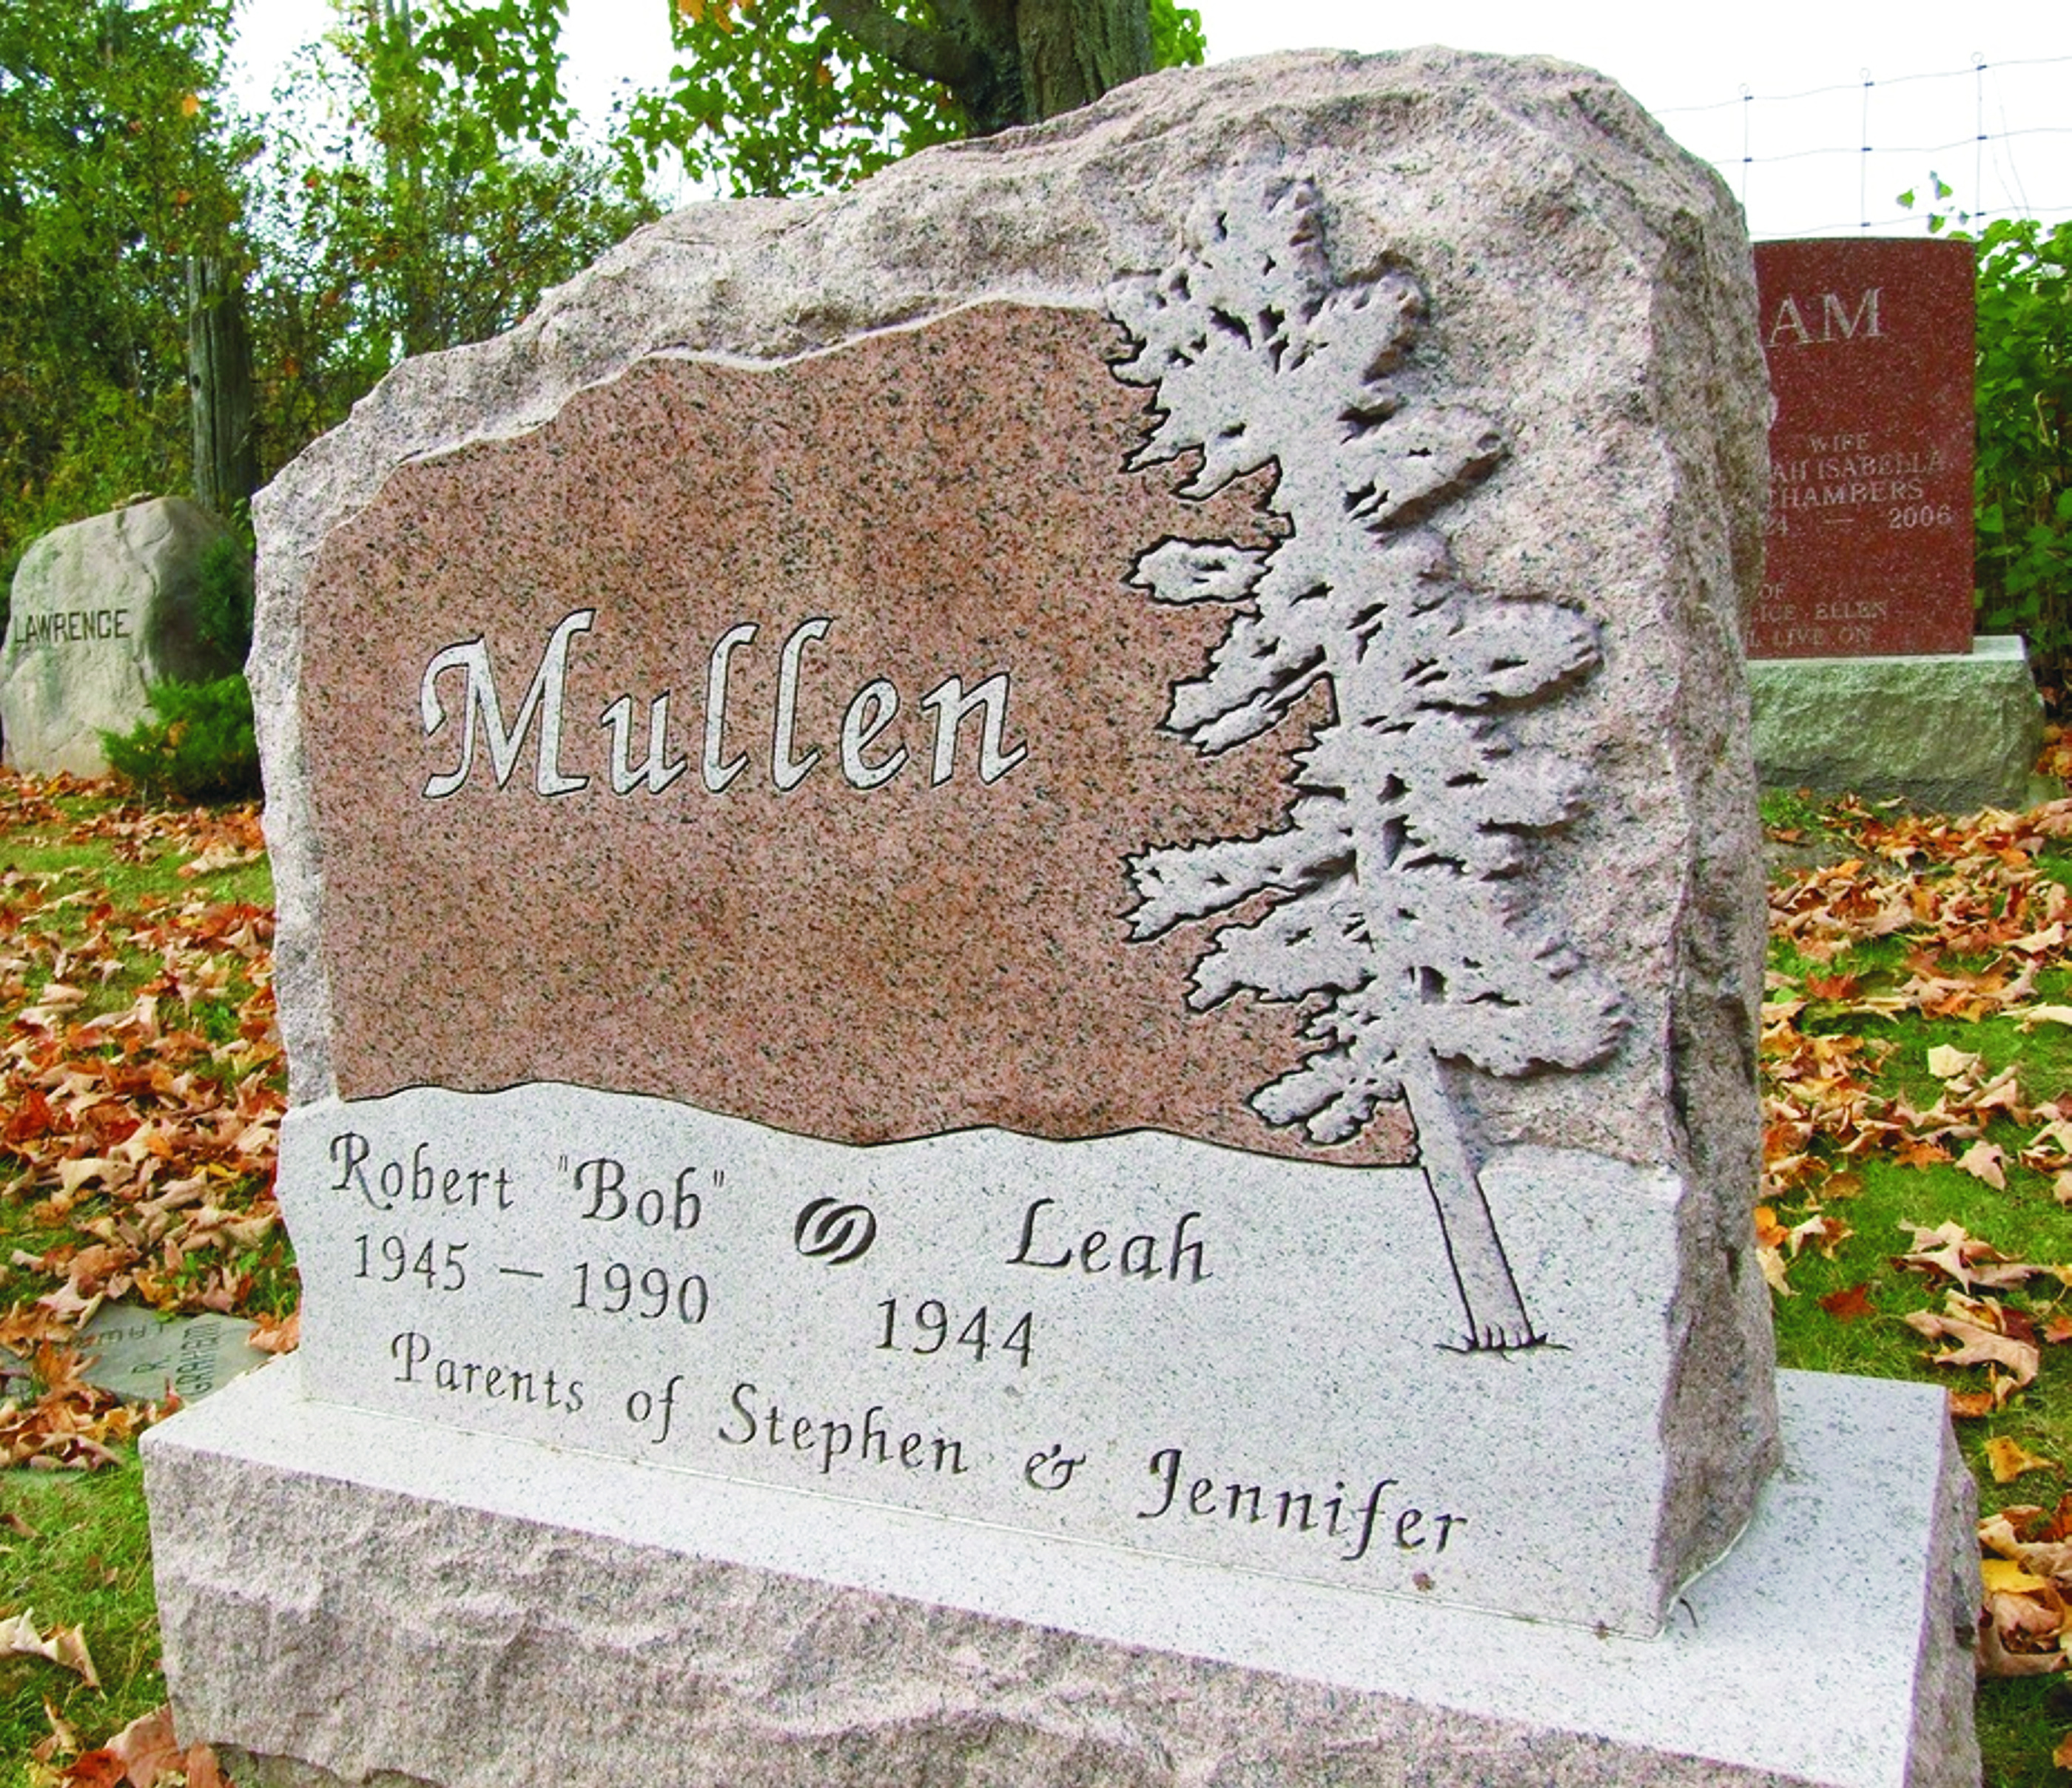 Mullen - Rock Margin Edge